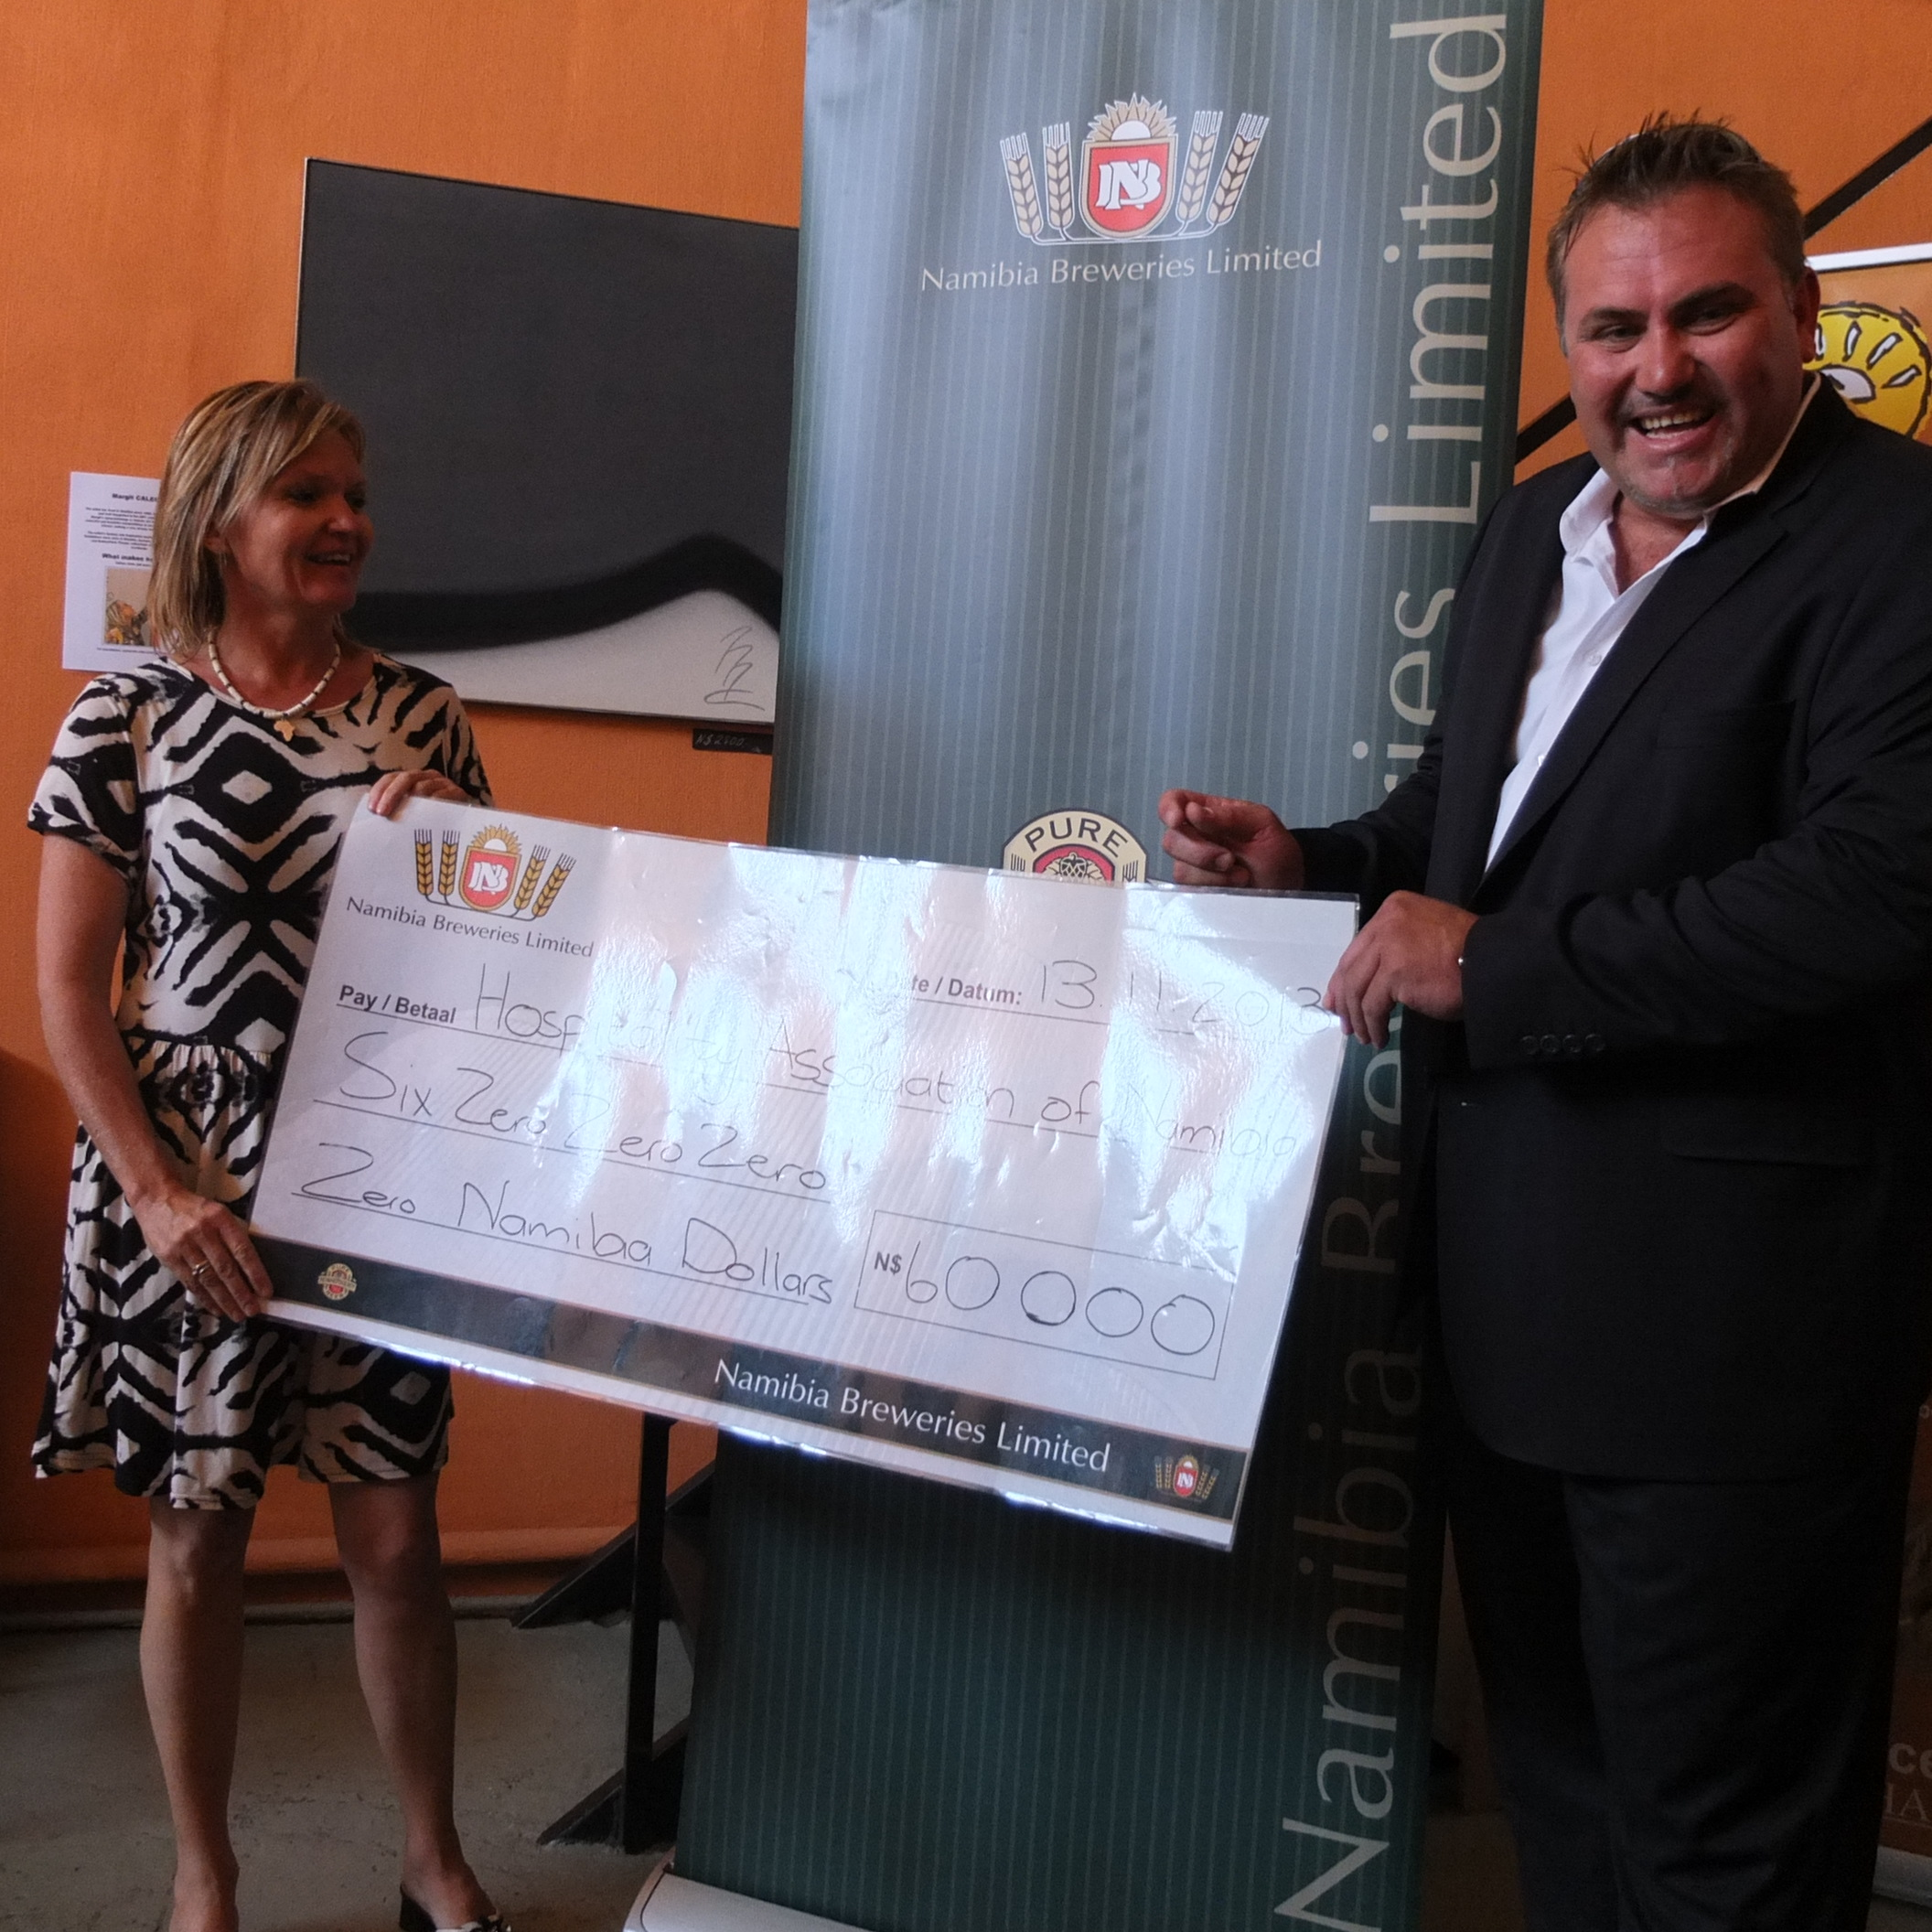 Wessie van der Westhuizen, Managing Director of Namibia Breweries Limited hands over the cheque